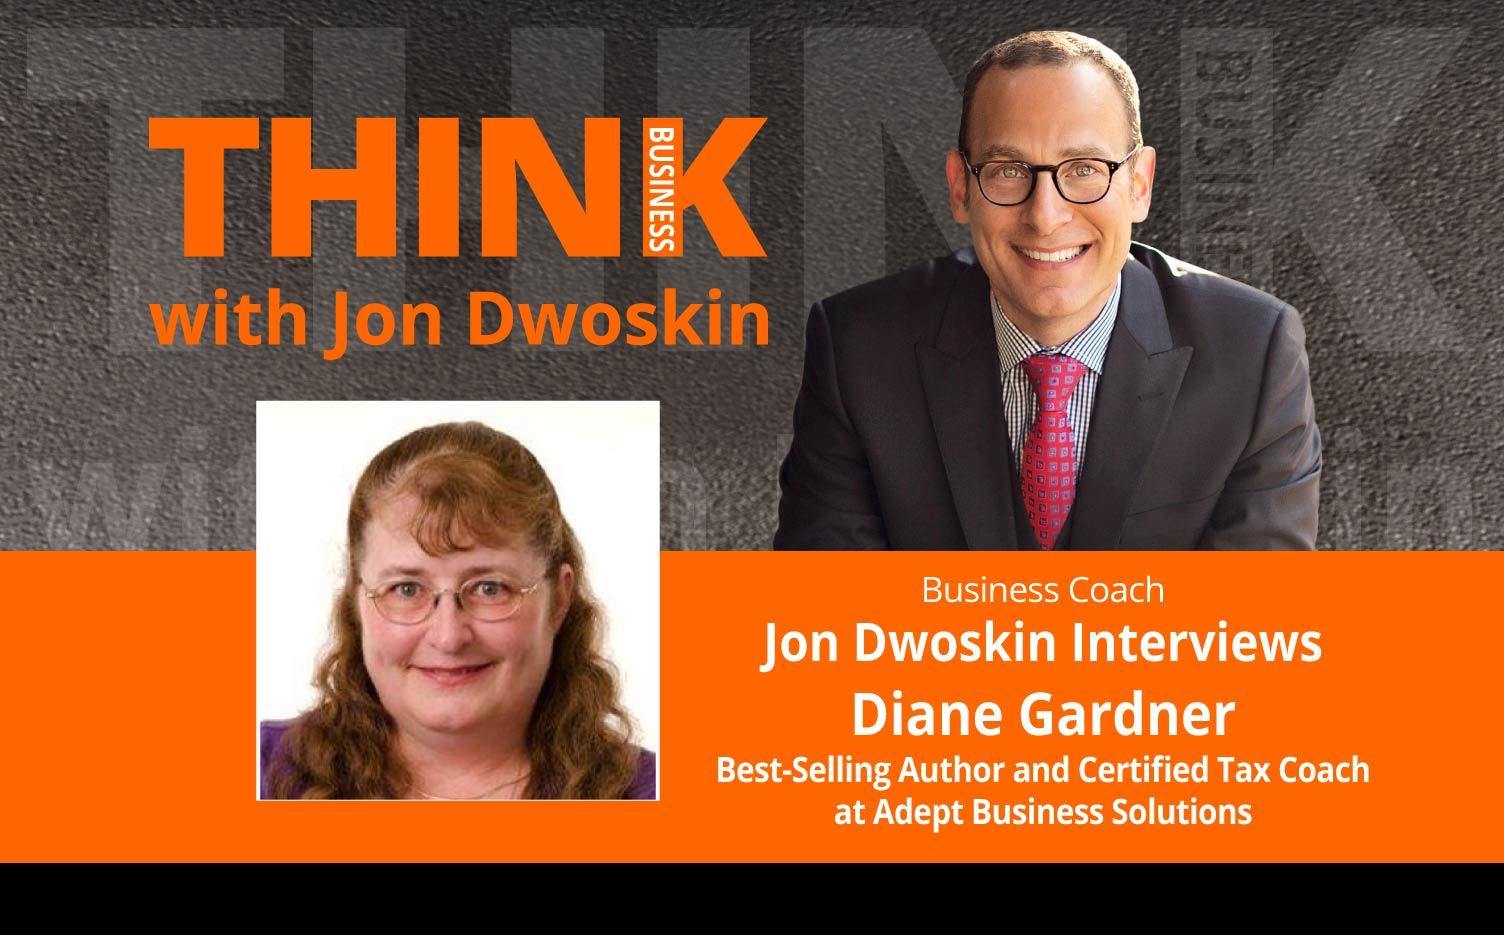 THINK Business Podcast: Jon Dwoskin Interviews Diane Gardner, Best-Selling Author and Certified Tax Coach at Adept Business Solutions